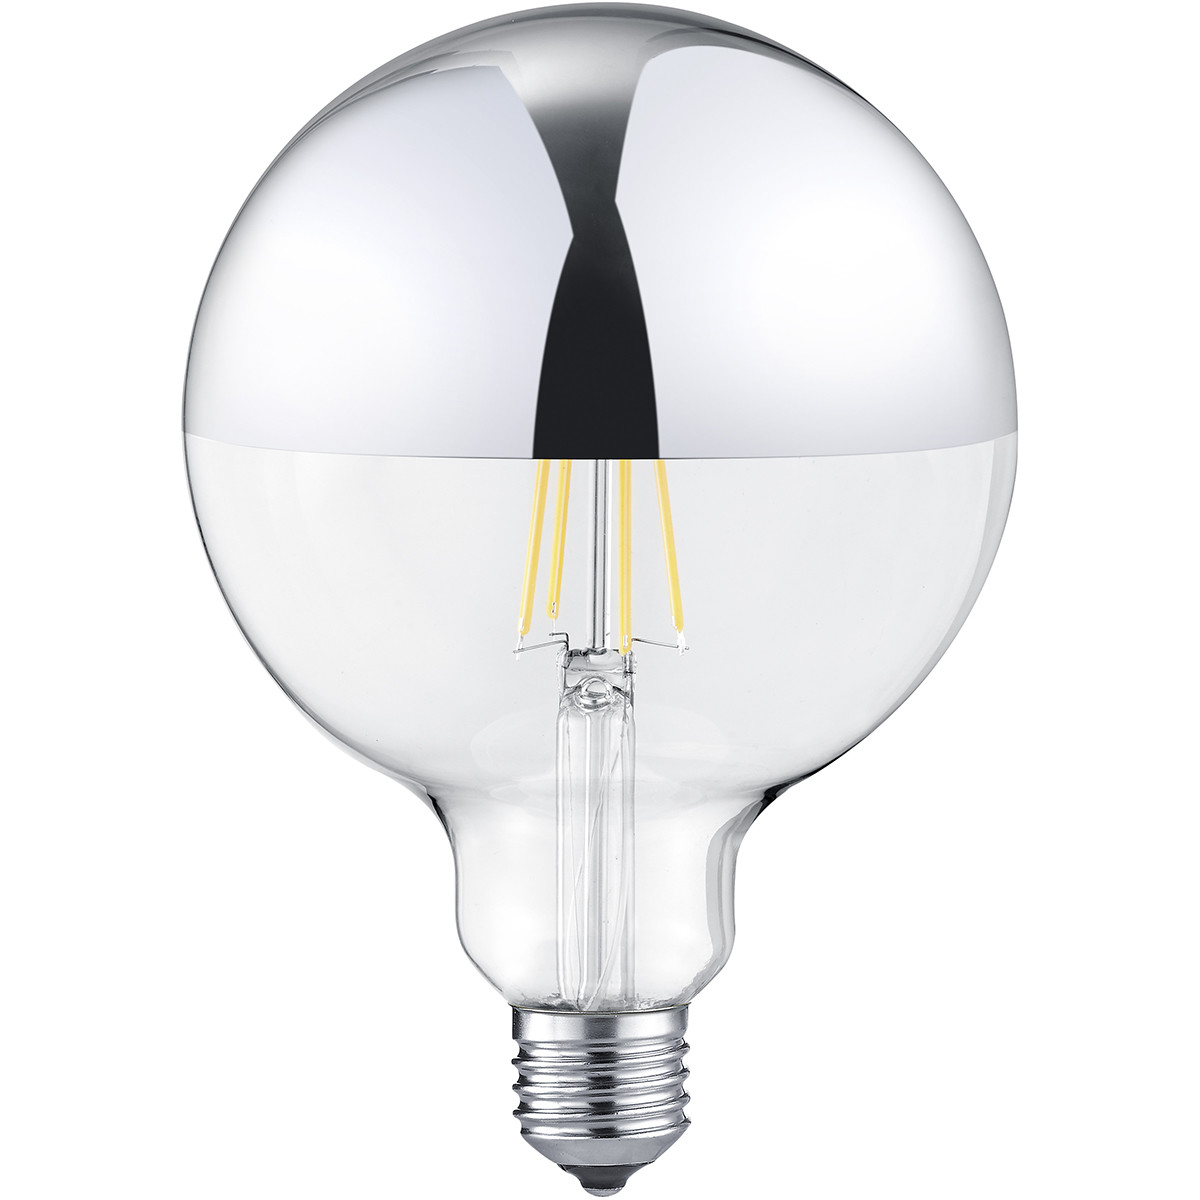 LED Lamp - Filament - Trion Limpo XL - E27 Fitting - 7W - Warm Wit 2700K - Glans Chroom - Glas